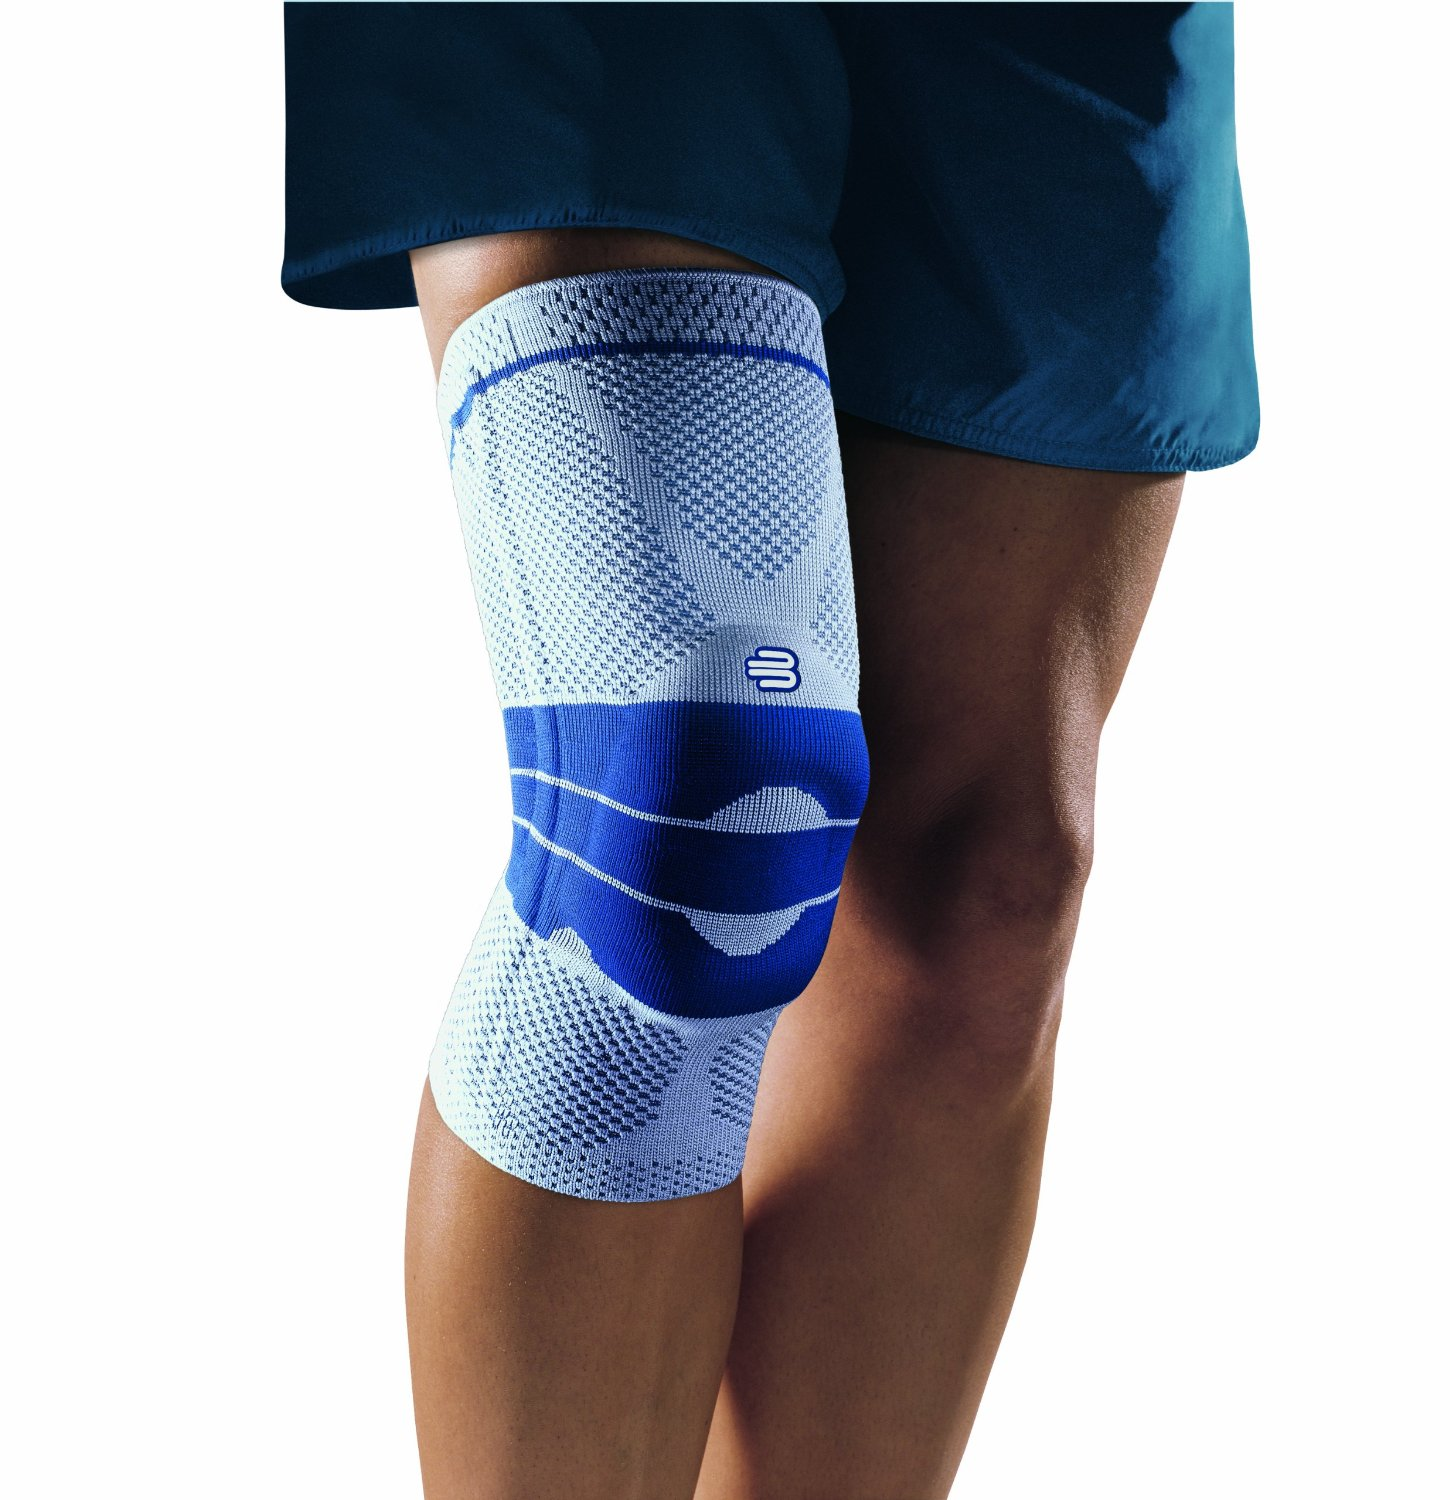 ddcadc539a Best Knee Brace Reviews: Top 10 for 2018